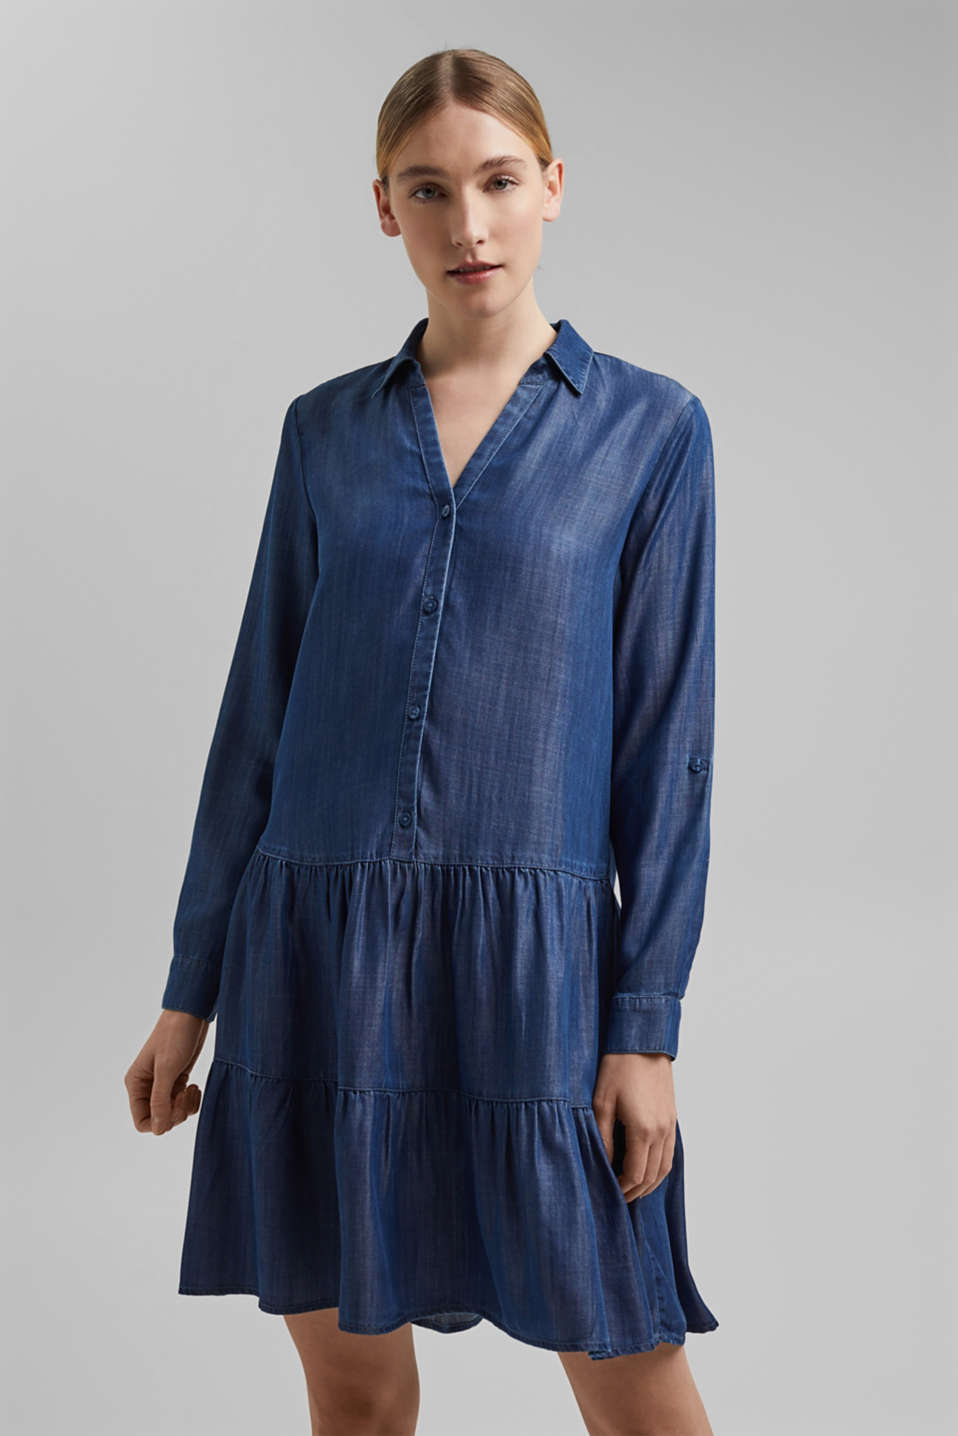 Esprit - In TENCEL™: abito in denim con volant